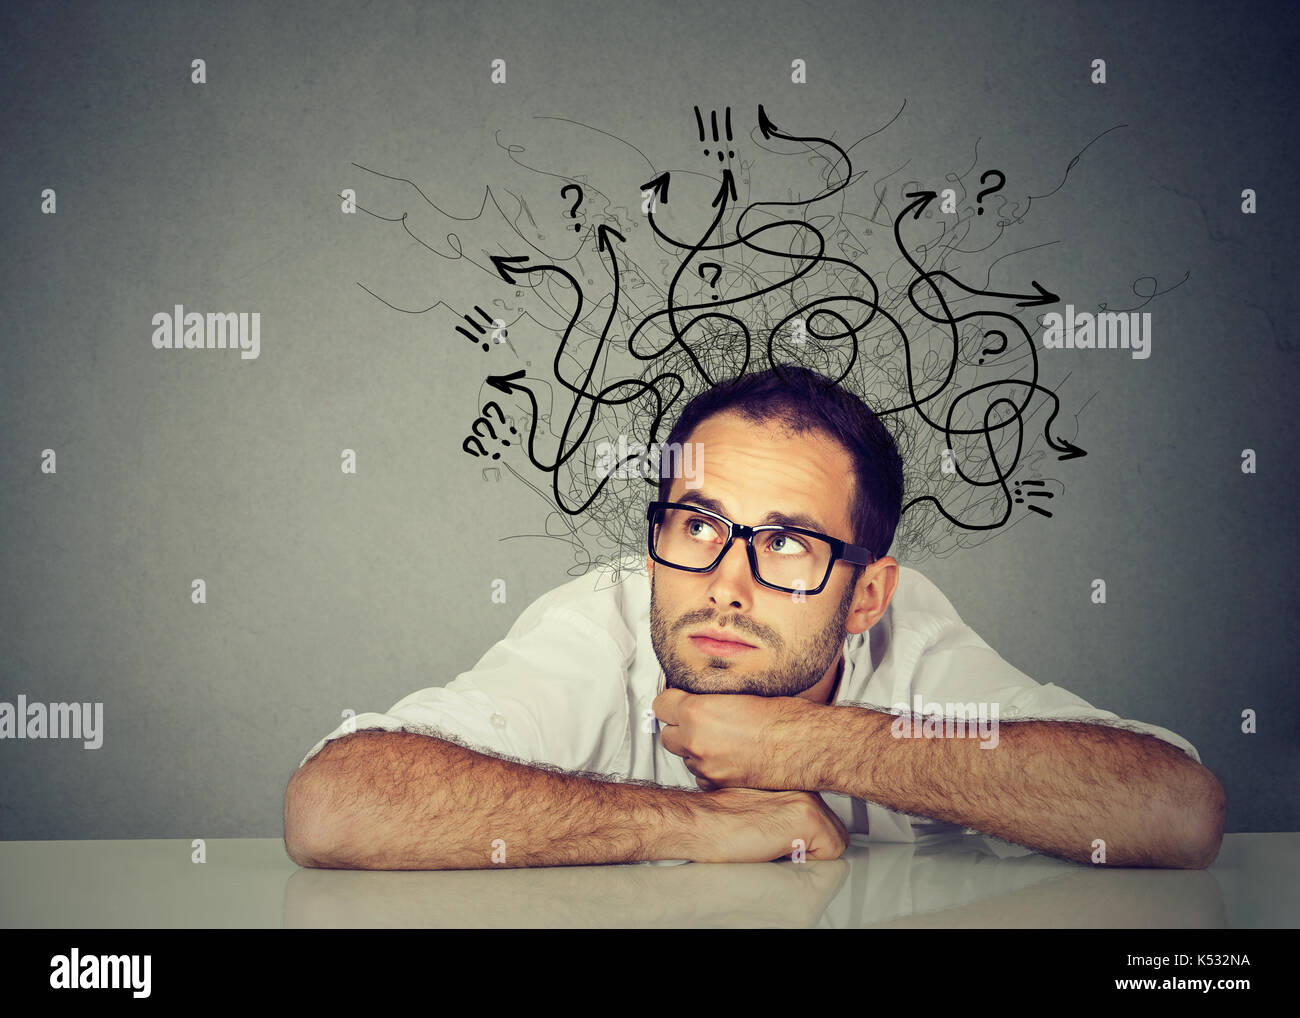 Penser l'homme d'affaires qui envisagent une solution Photo Stock